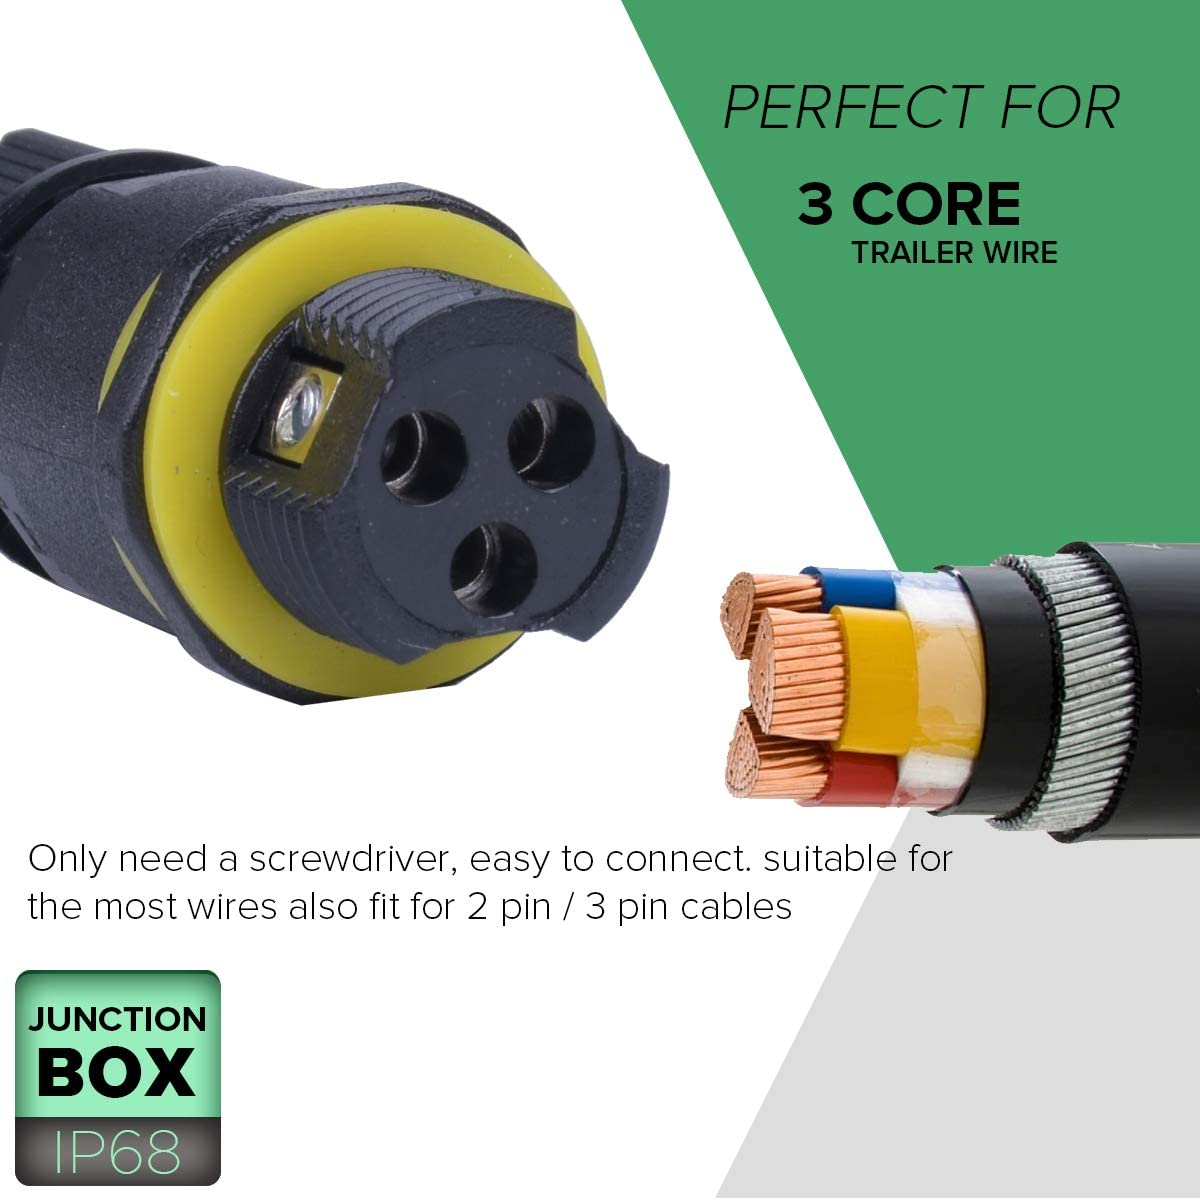 2-Pack La Vane 2 Way IP68 Waterproof 5 Pin Cable Connector External Sleeve Coupler for /Ø 4-14mm Cable Range 2 Way IP68 Waterproof Junction Box Outdoor Cable Connector